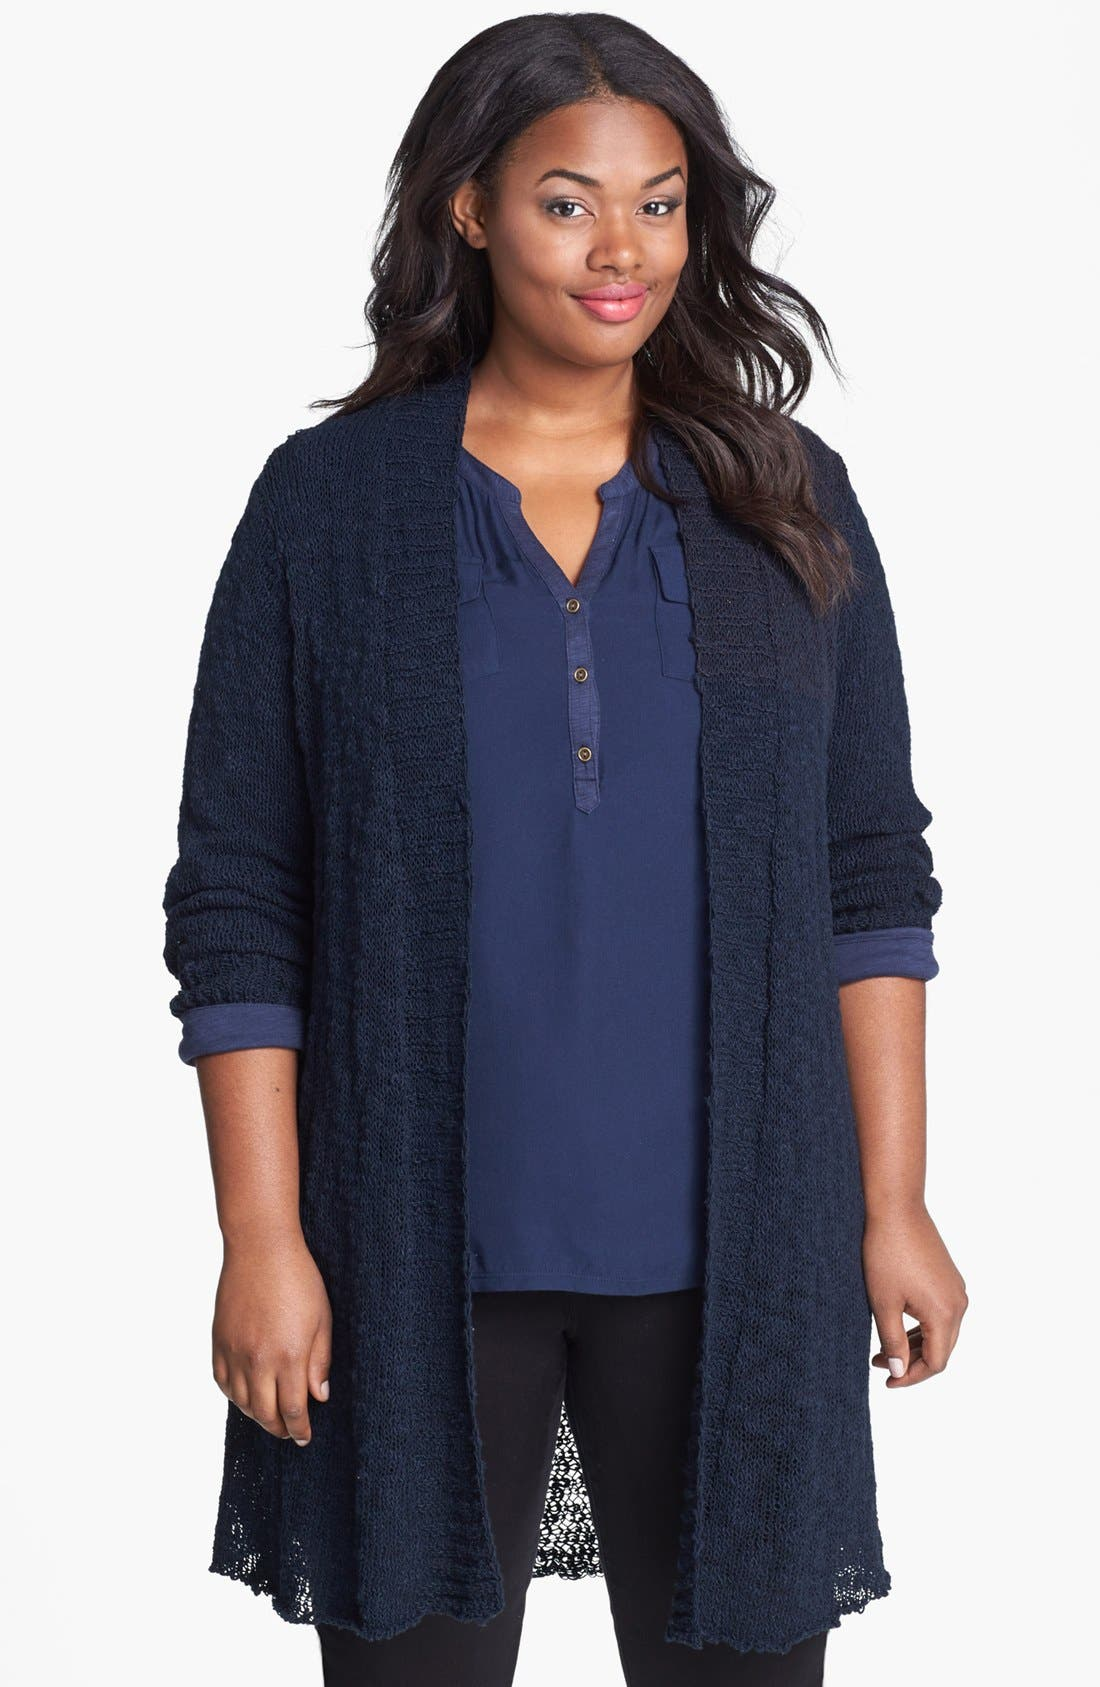 Alternate Image 1 Selected - Lucky Brand 'Alonsa' Mixed Knit Cardigan (Plus Size)